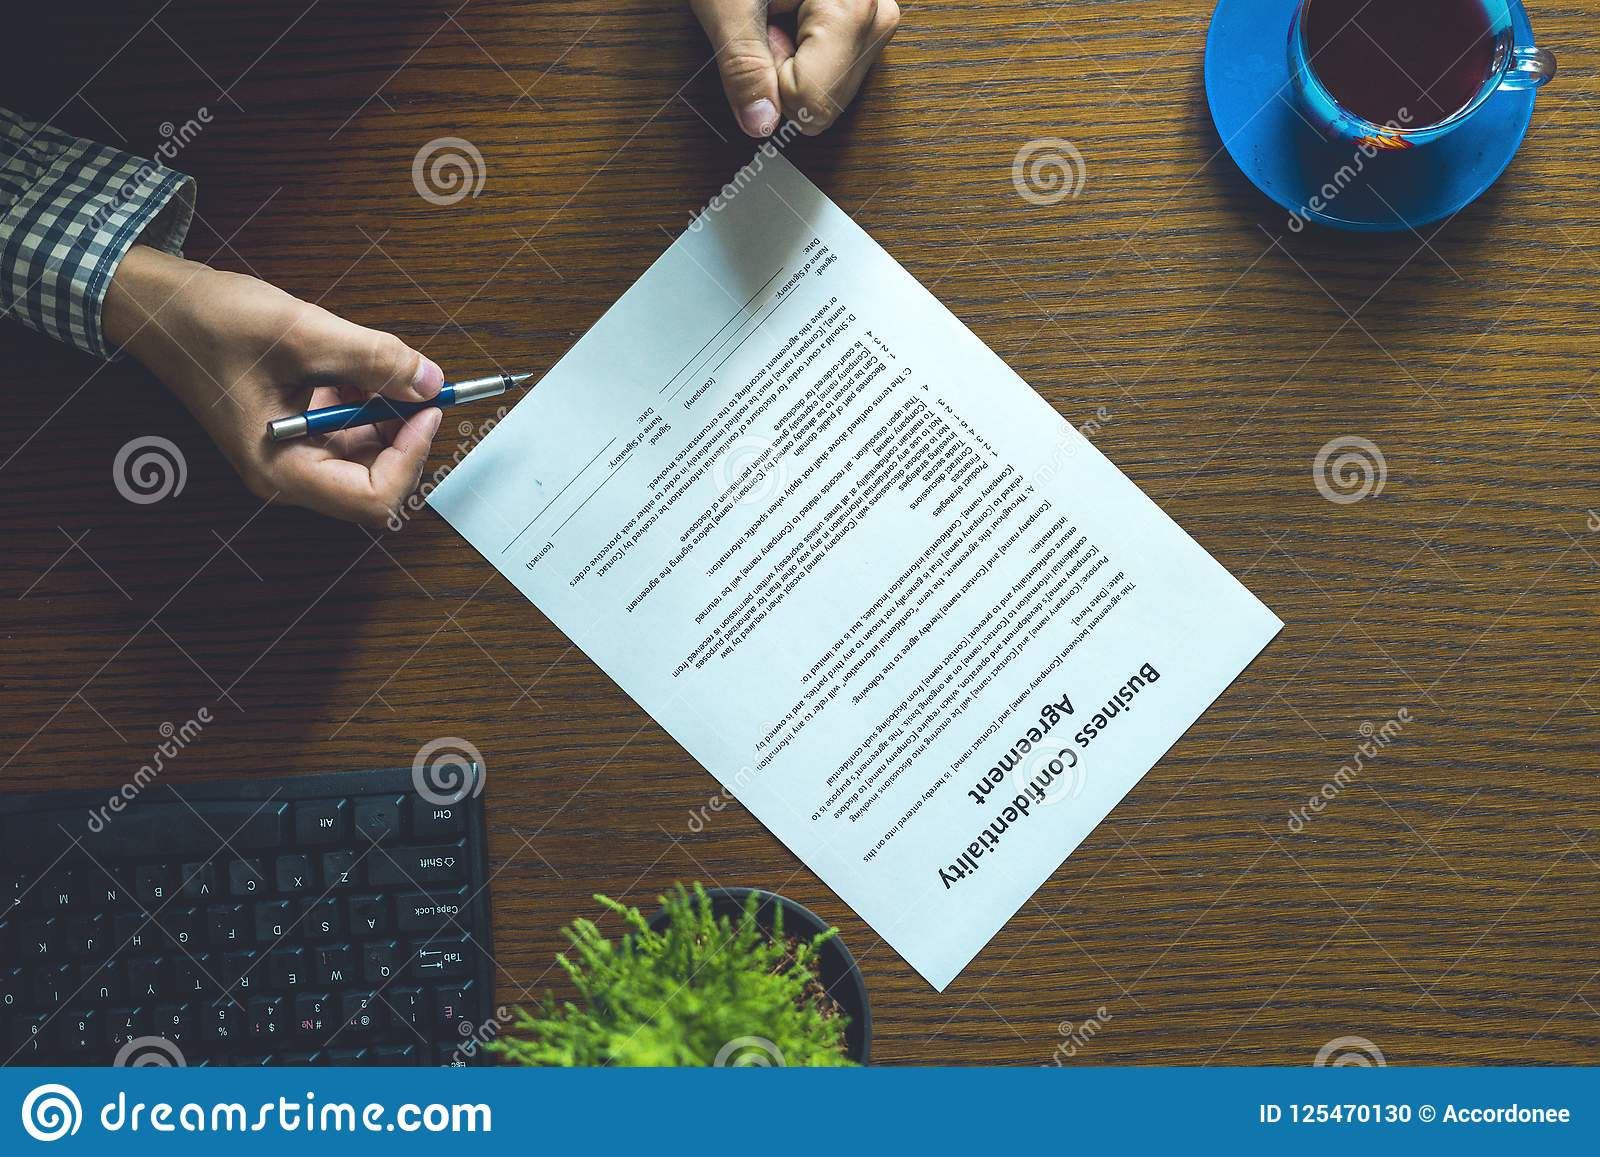 Partnership Agreement Business Document Signed By A Person On The